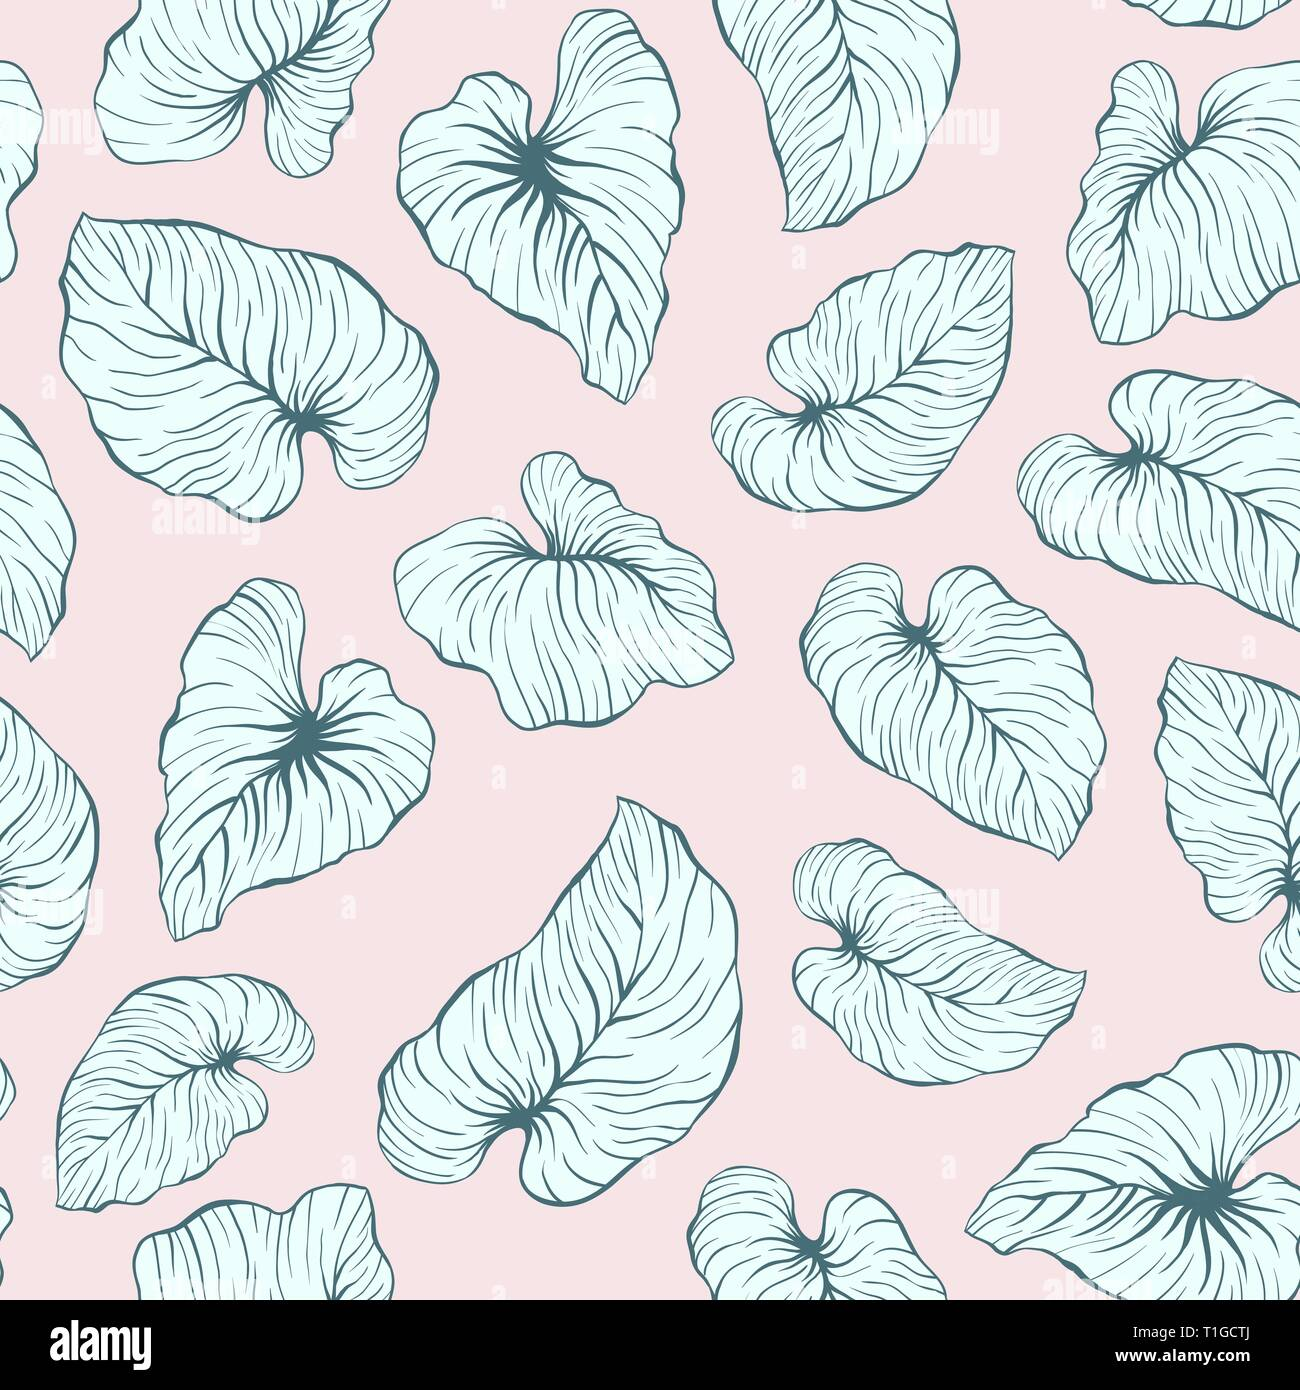 Falling Palm Leaves Repeat Seamless Vector Pattern for Italian Wedding or Pillow Tropical Background Design - Stock Vector